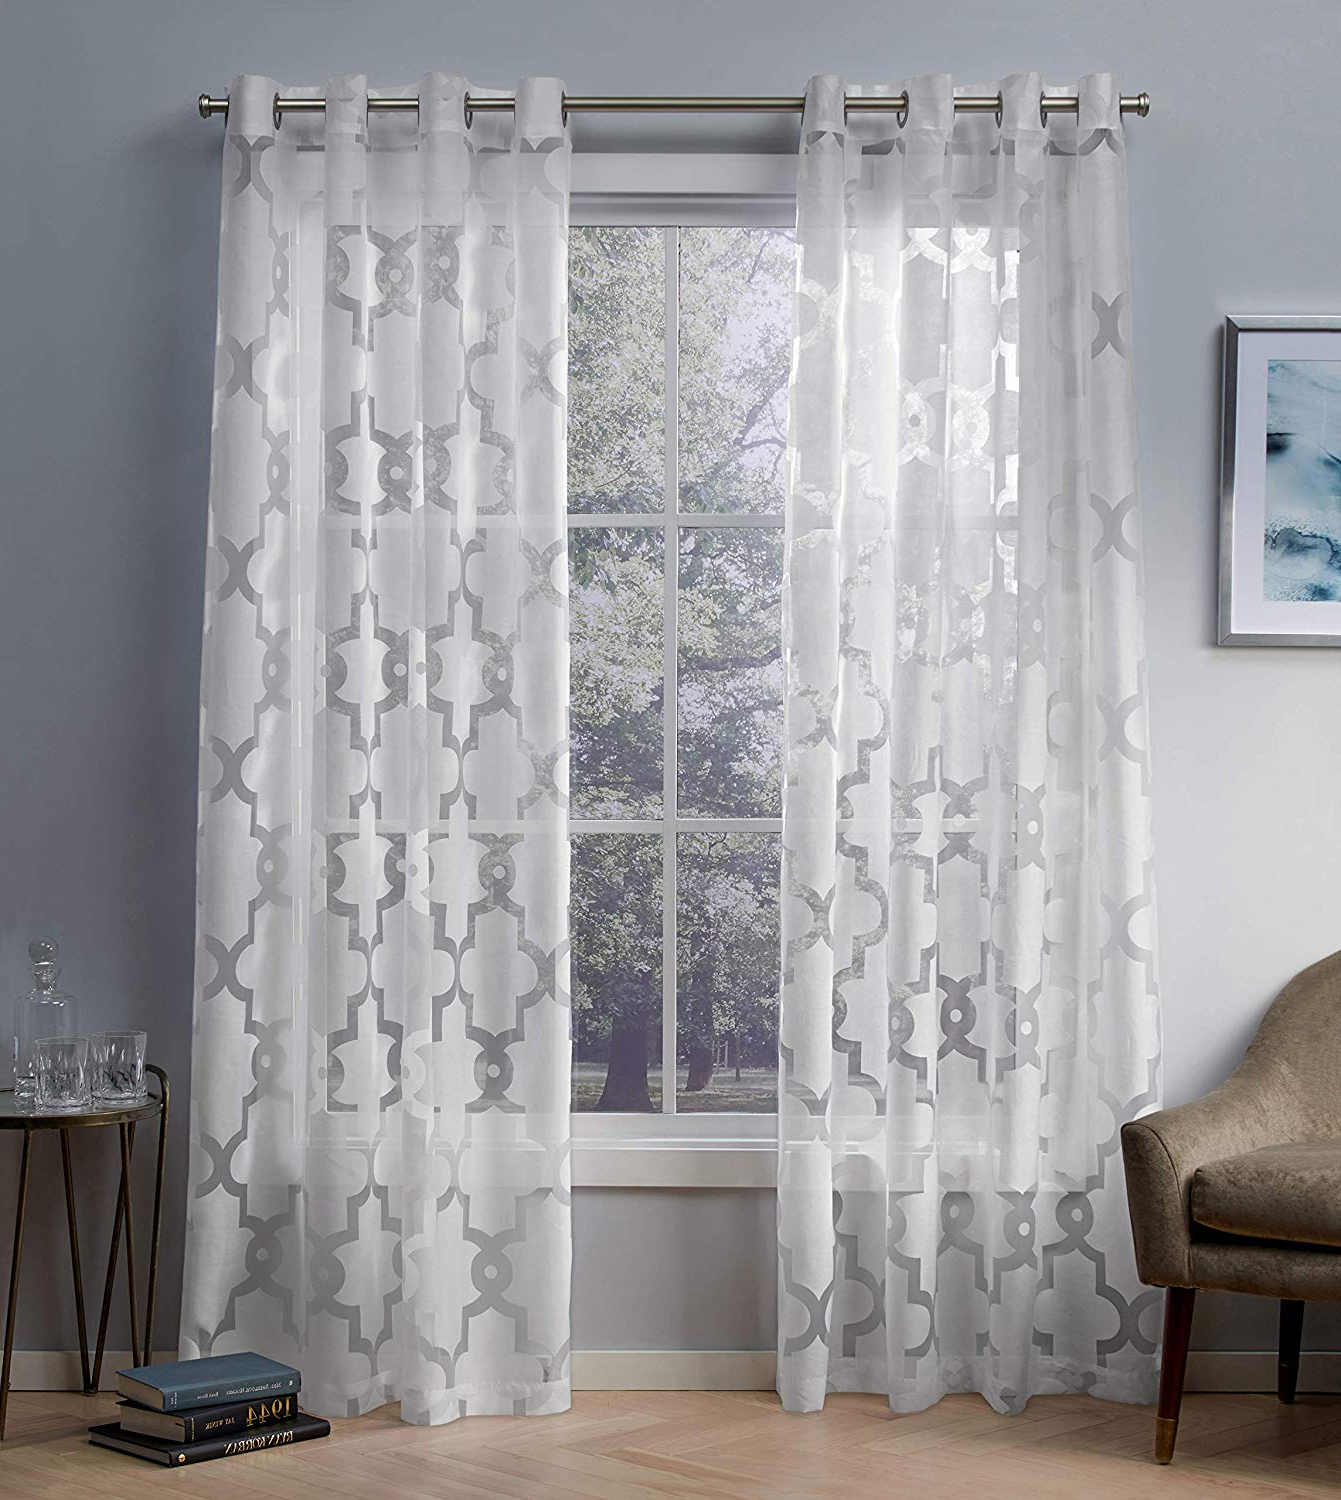 Most Current Penny Sheer Grommet Top Curtain Panel Pairs For Exclusive Home Curtains Essex Geometric Sheer Burnout Window Curtain Panel Pair With Grommet Top, 52x96, Winter White, 2 Piece (View 9 of 20)